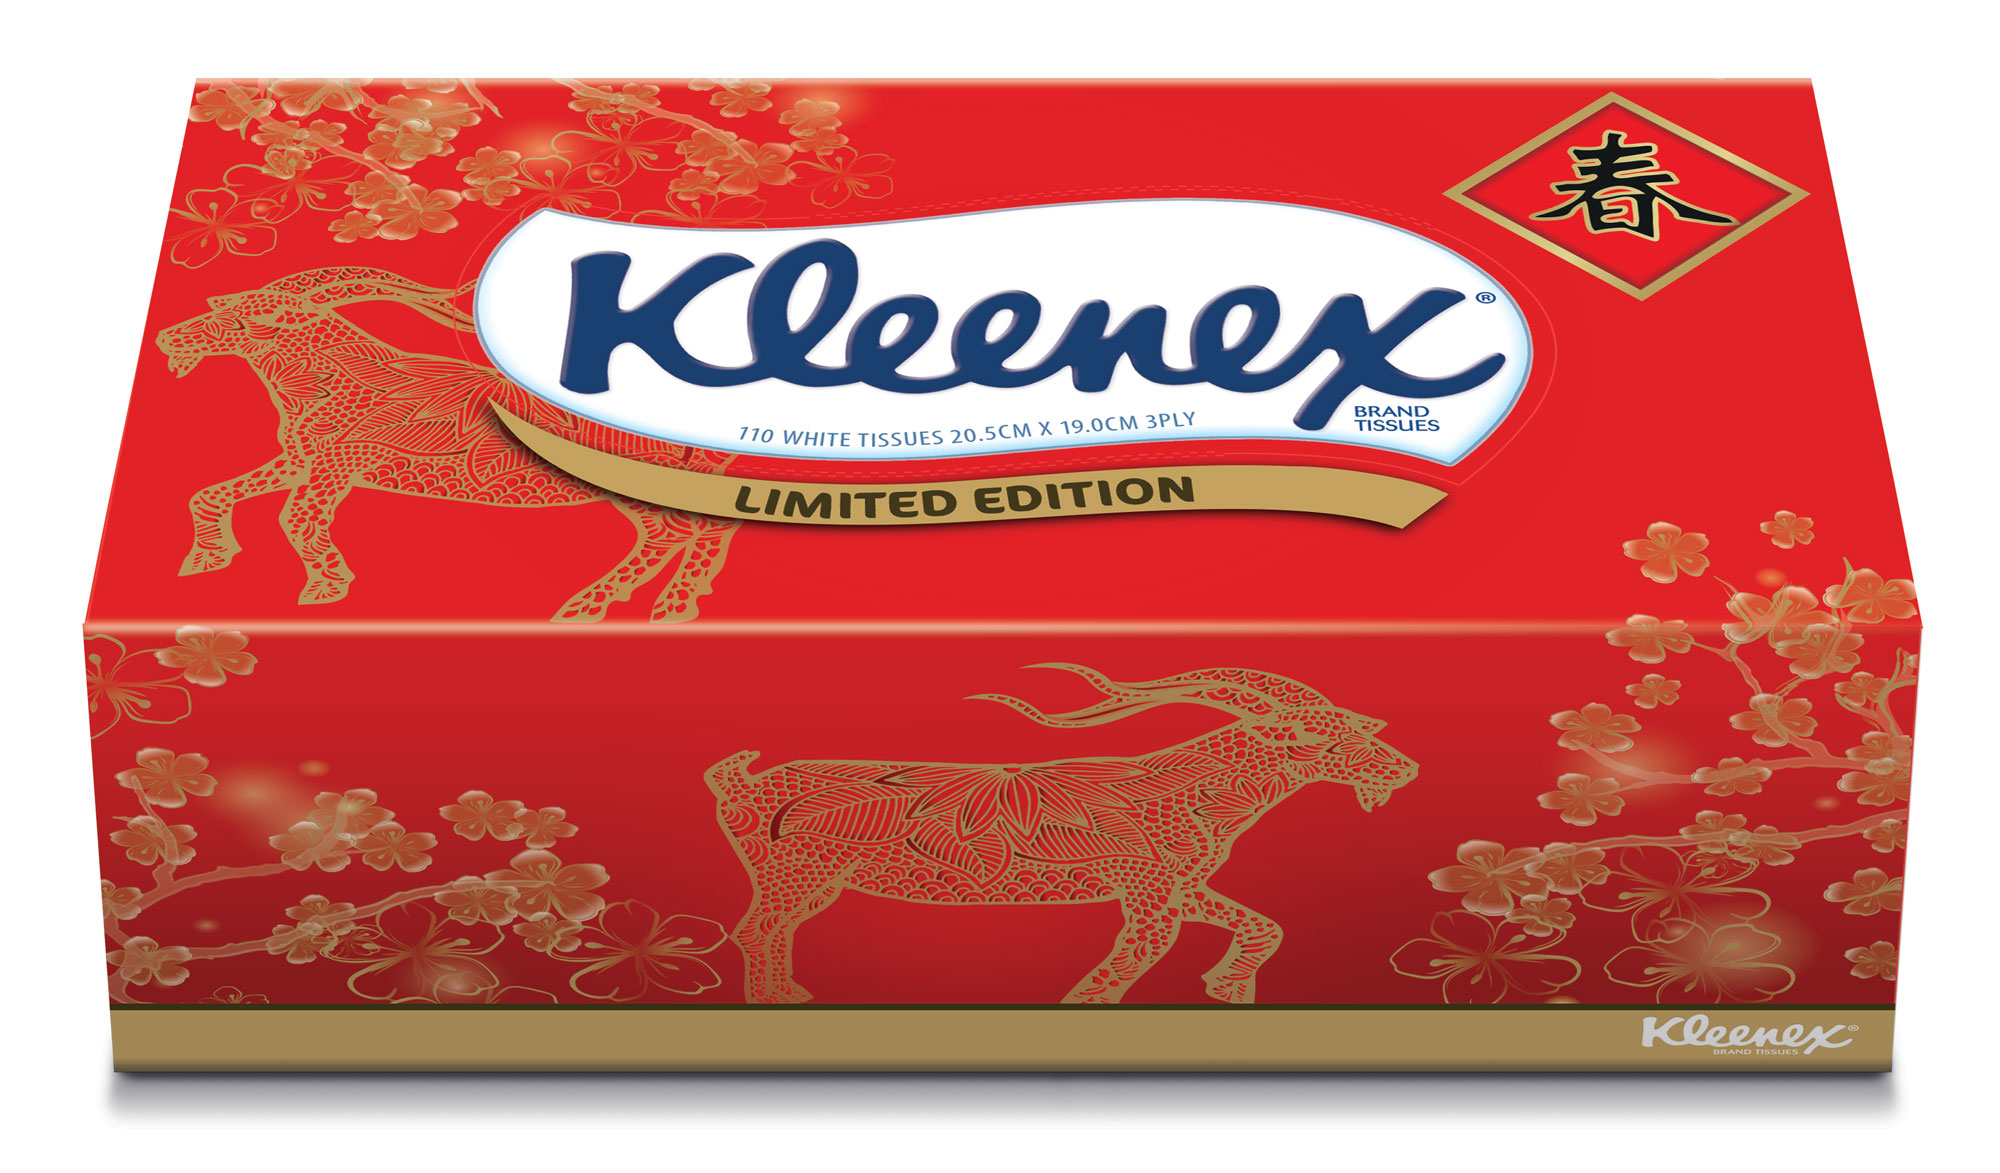 Kleenex-limited-edition-pack_Lge